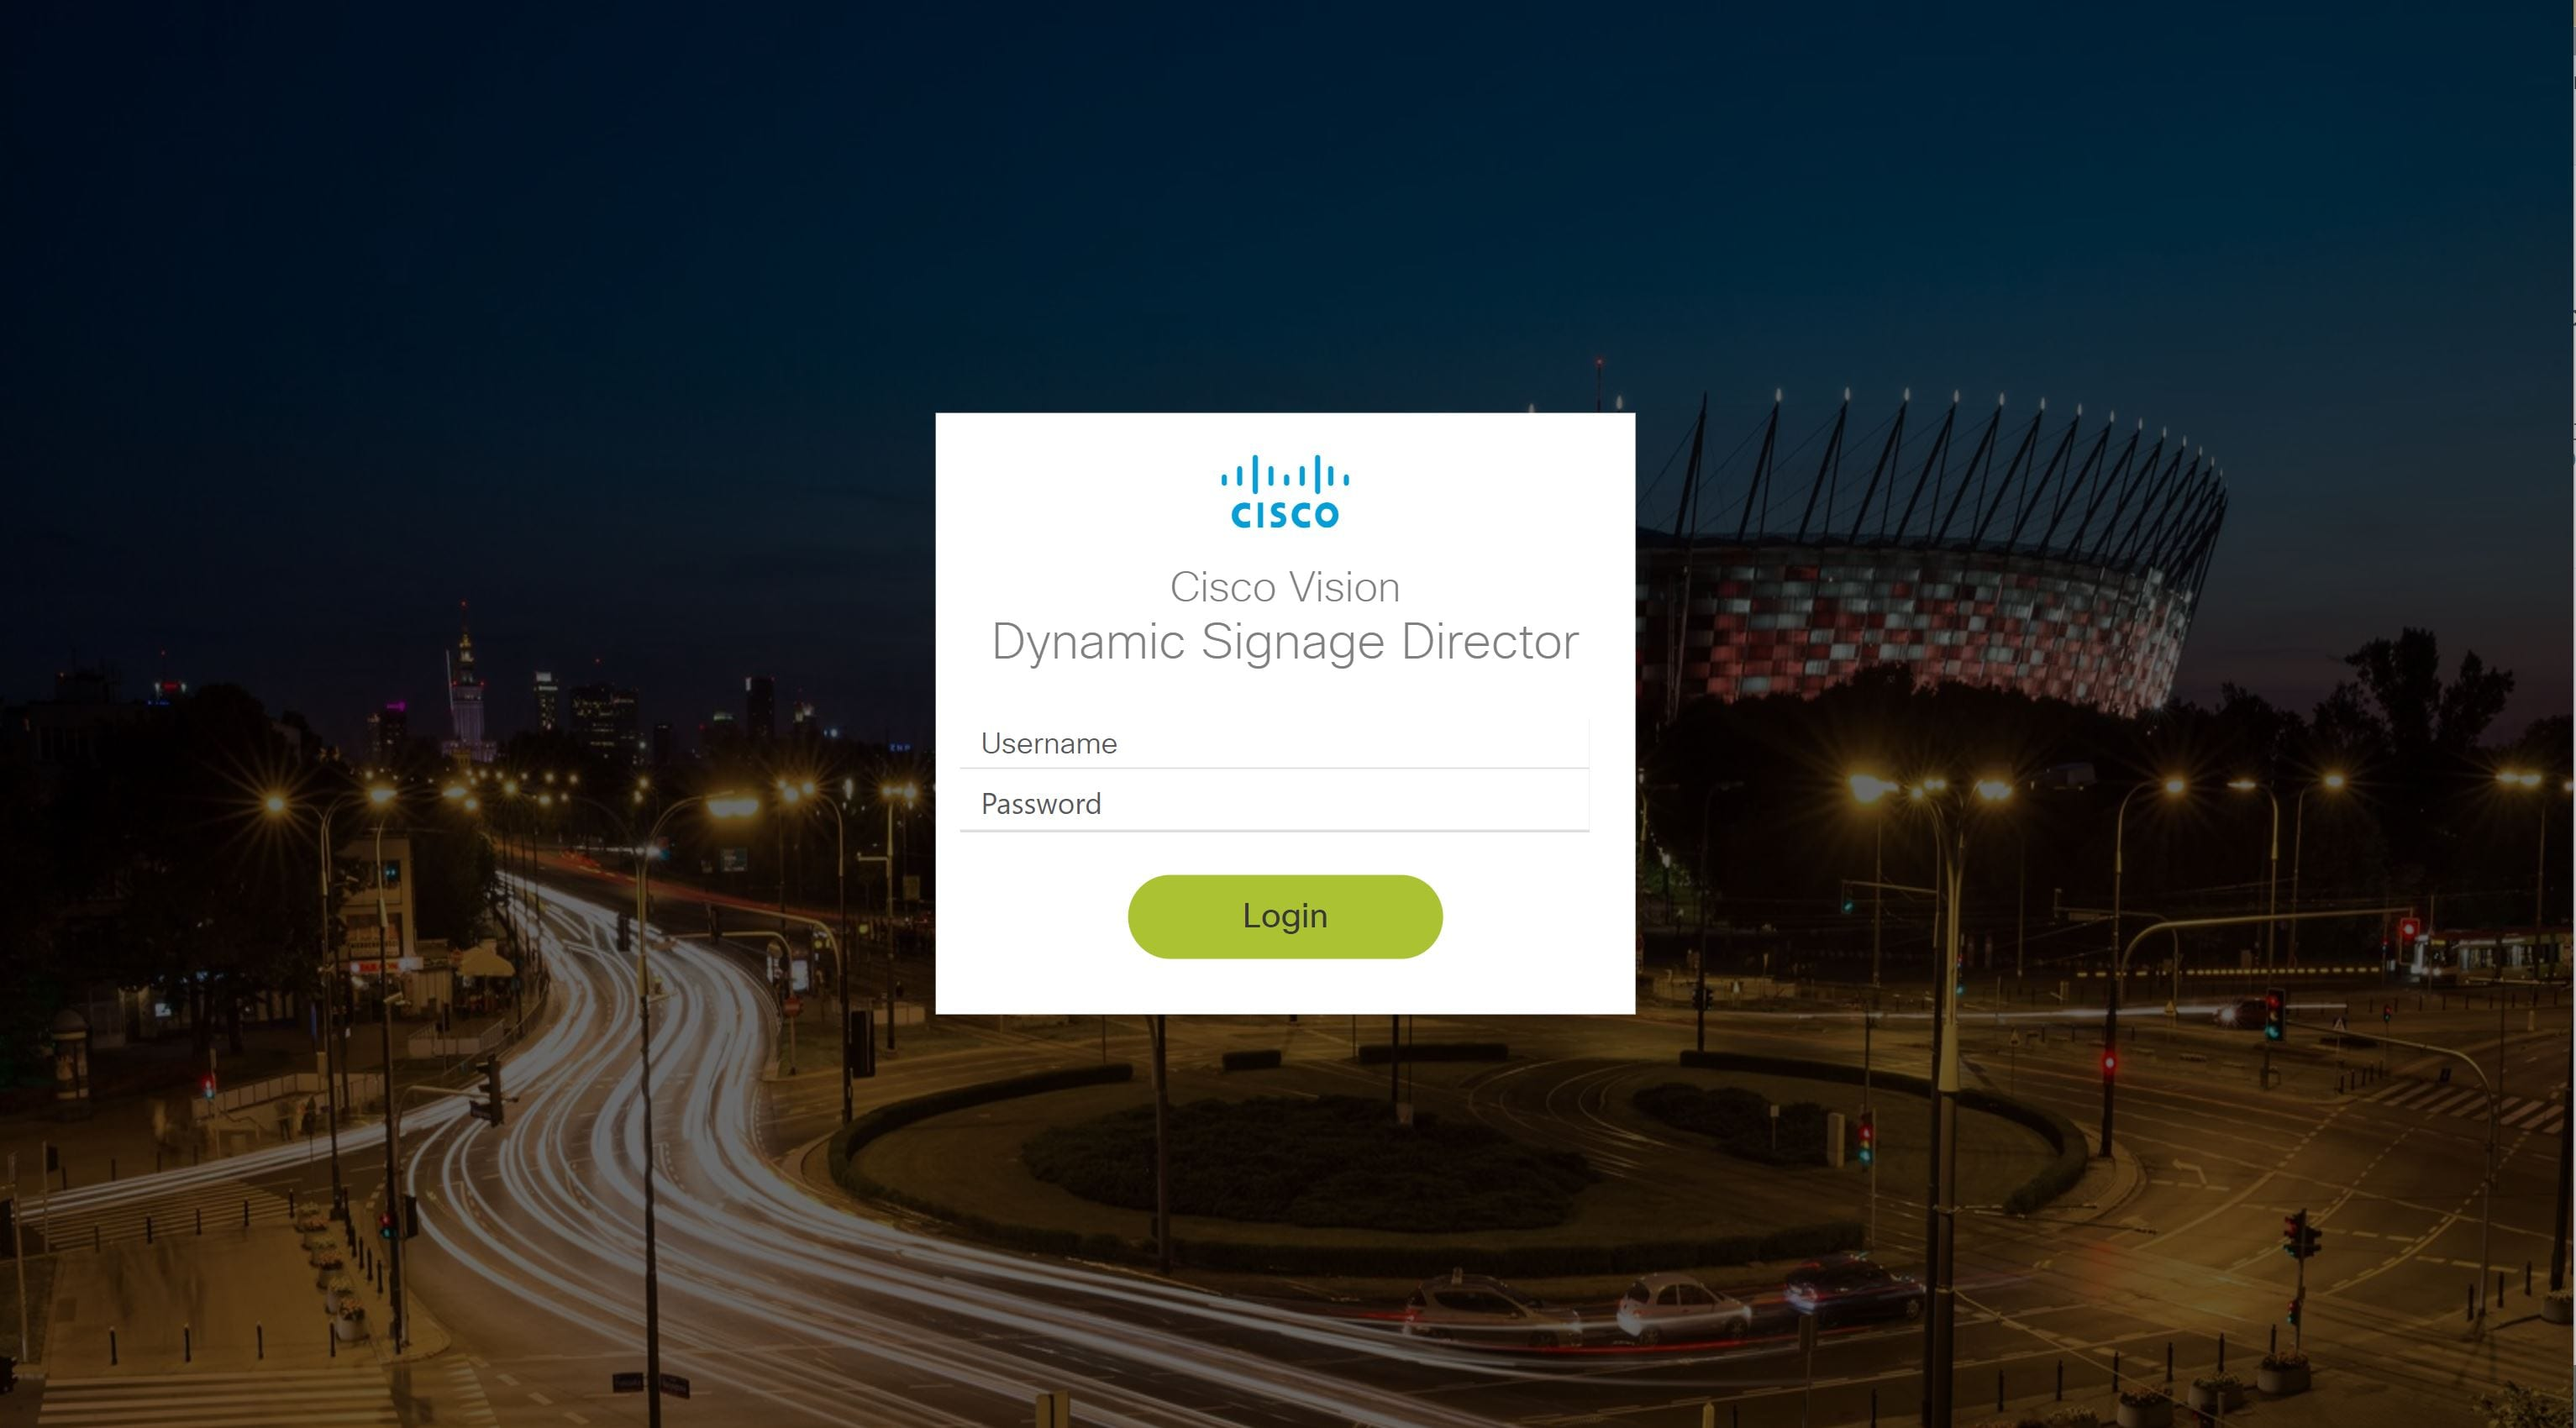 Release 6 1: Cisco Vision Dynamic Signage Director